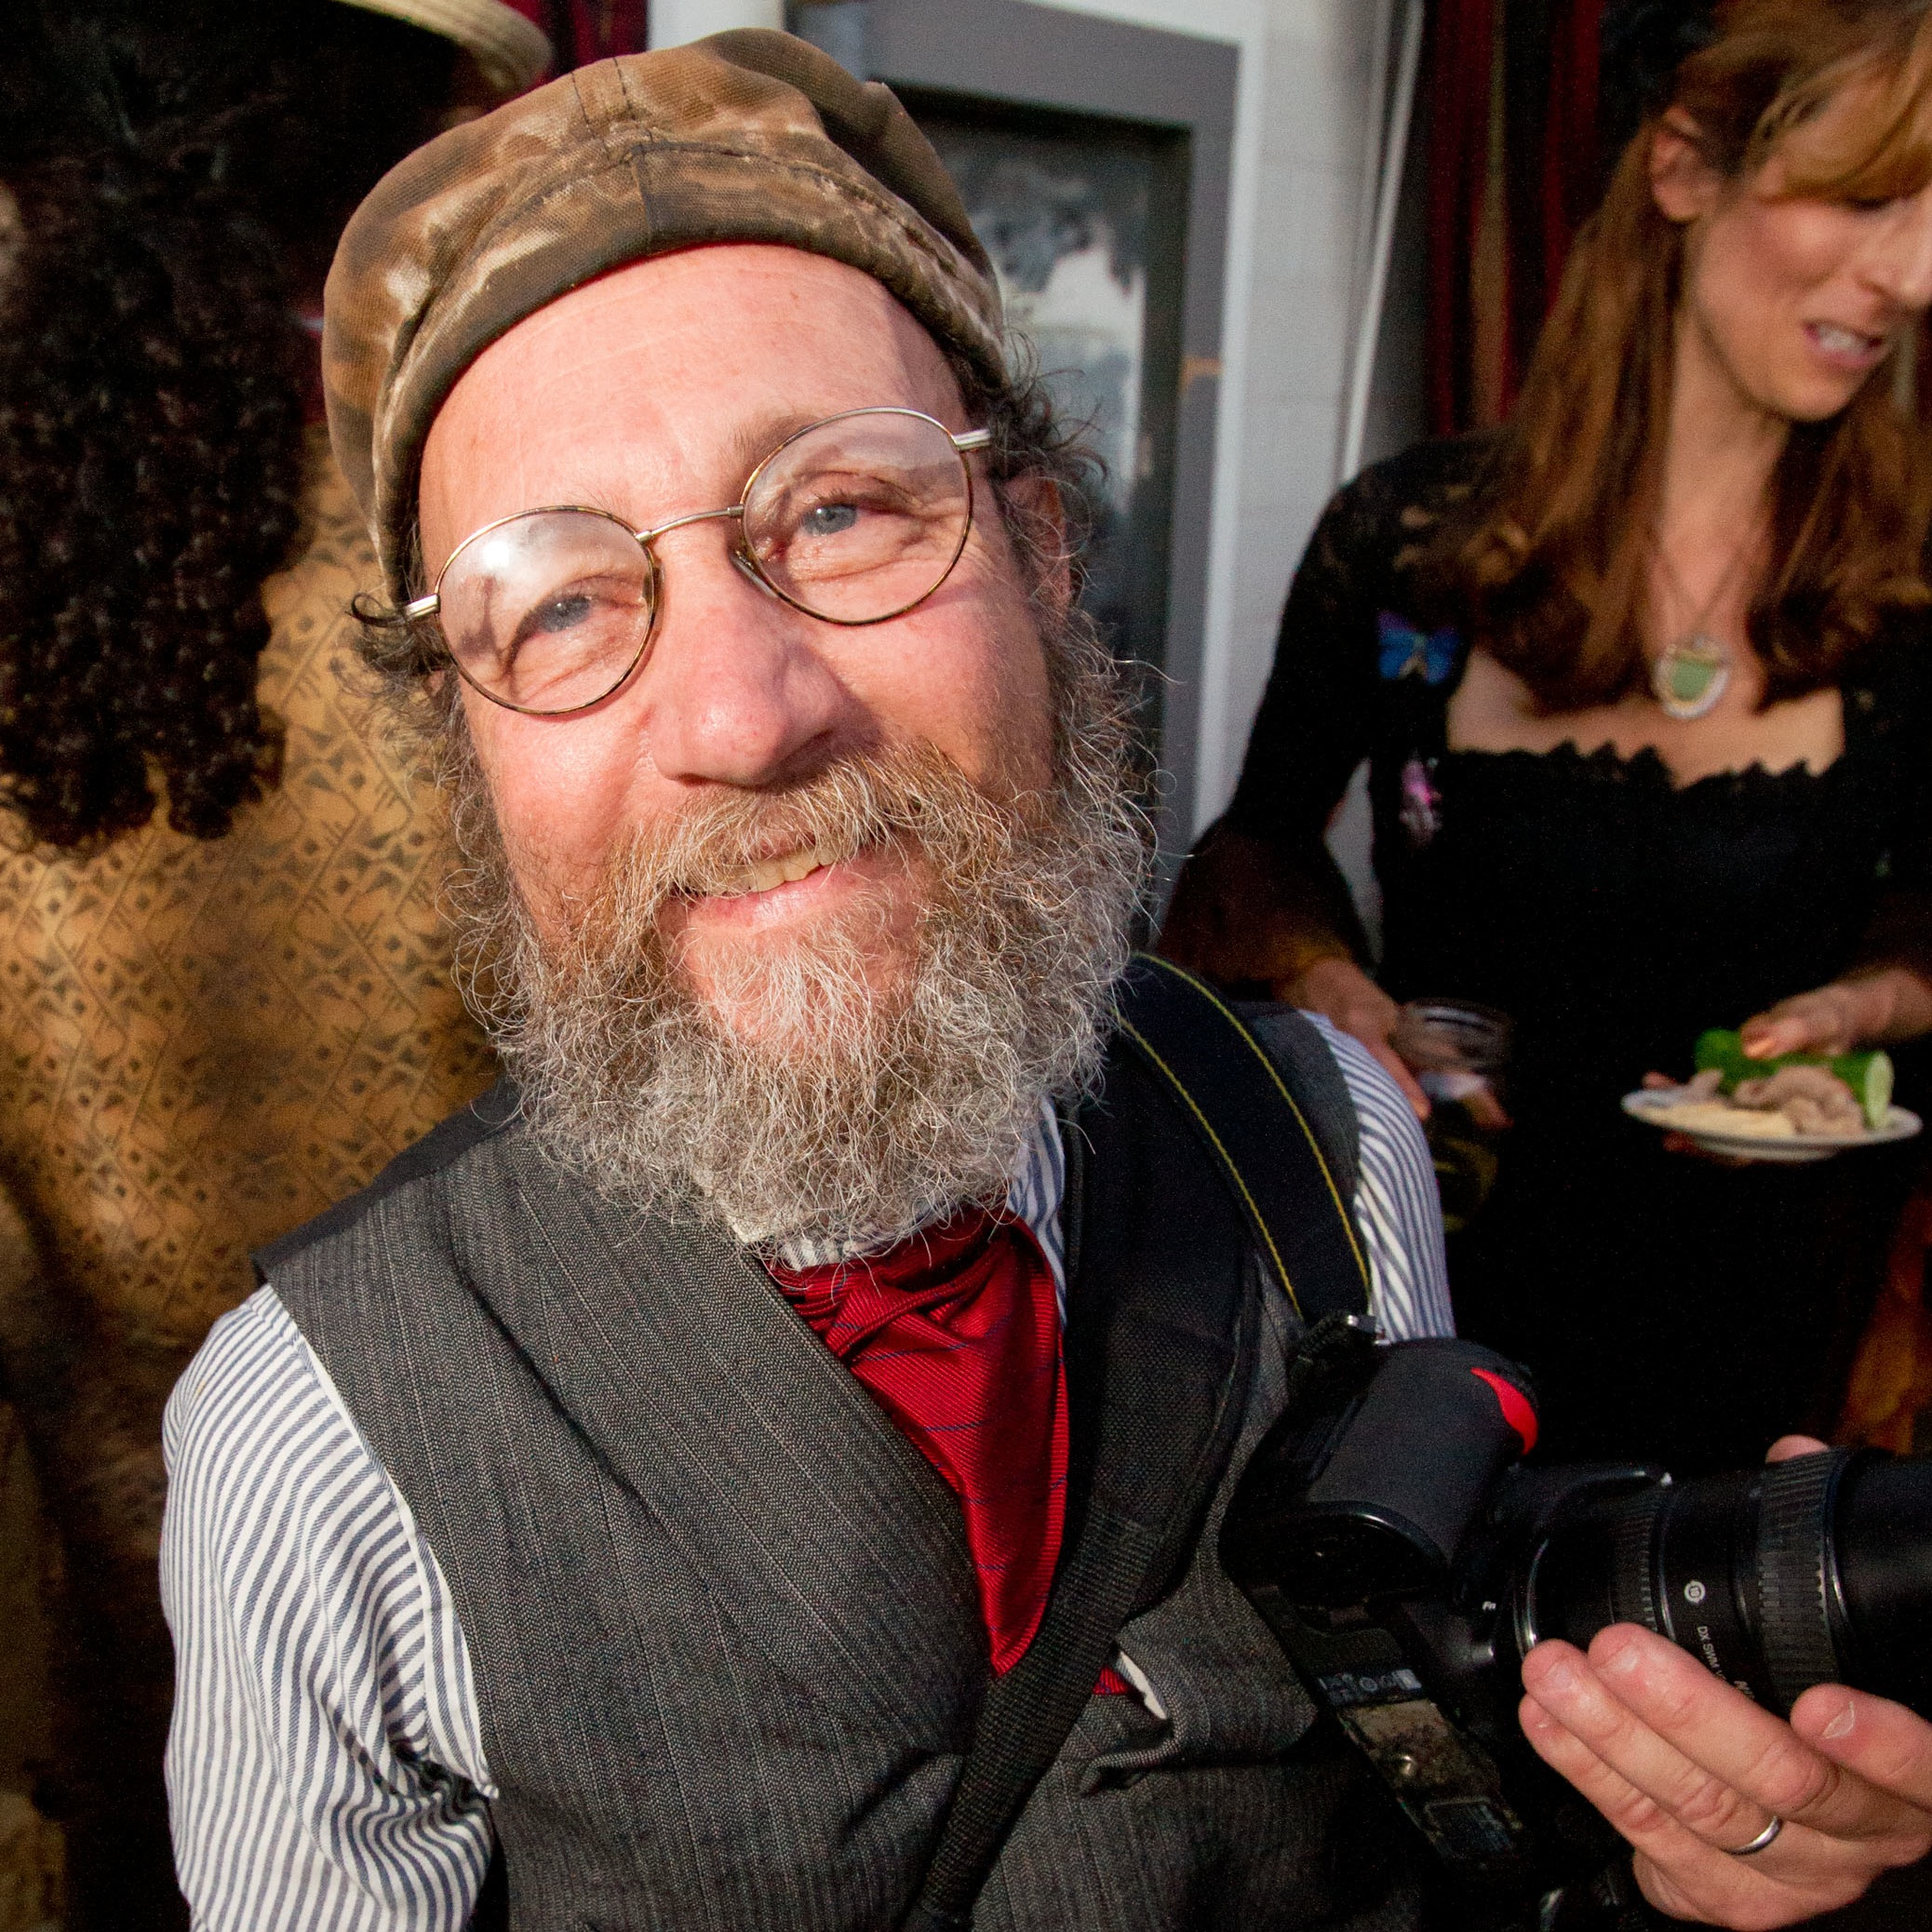 Steven Jacobson is another of our wonderful photographers. He also helps around the shop.